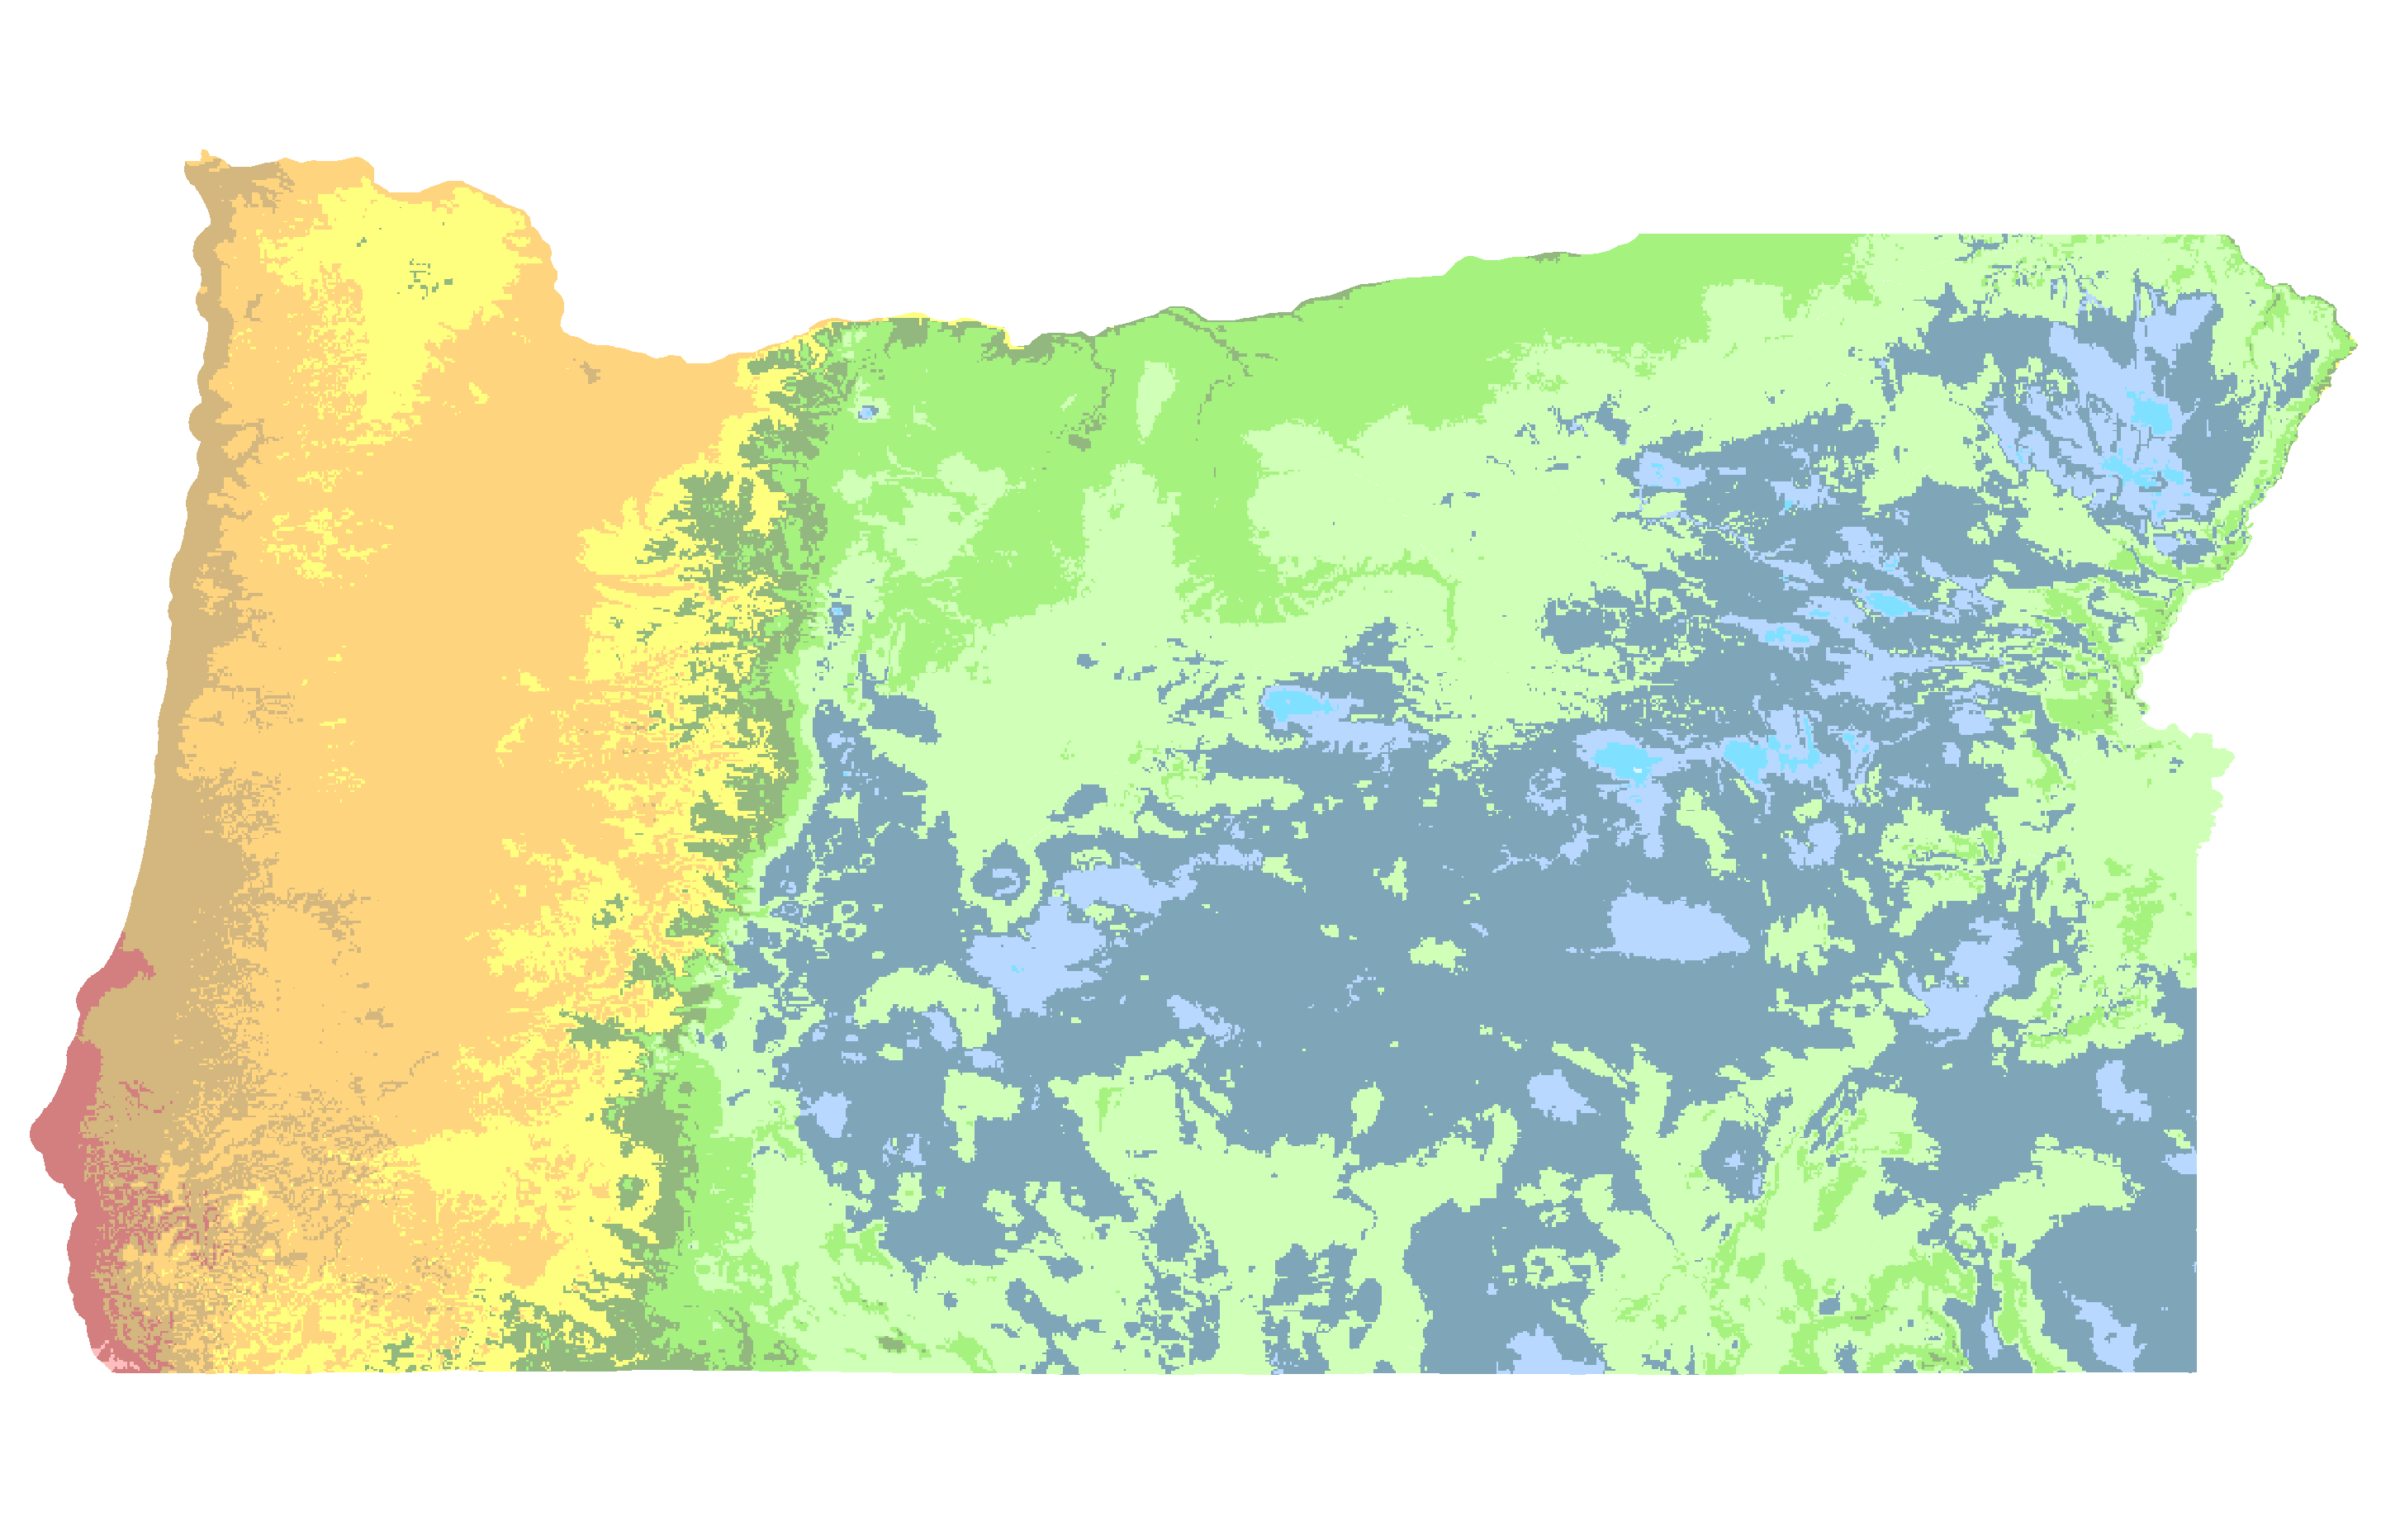 sunriver oregon is in usda hardiness zones 6a